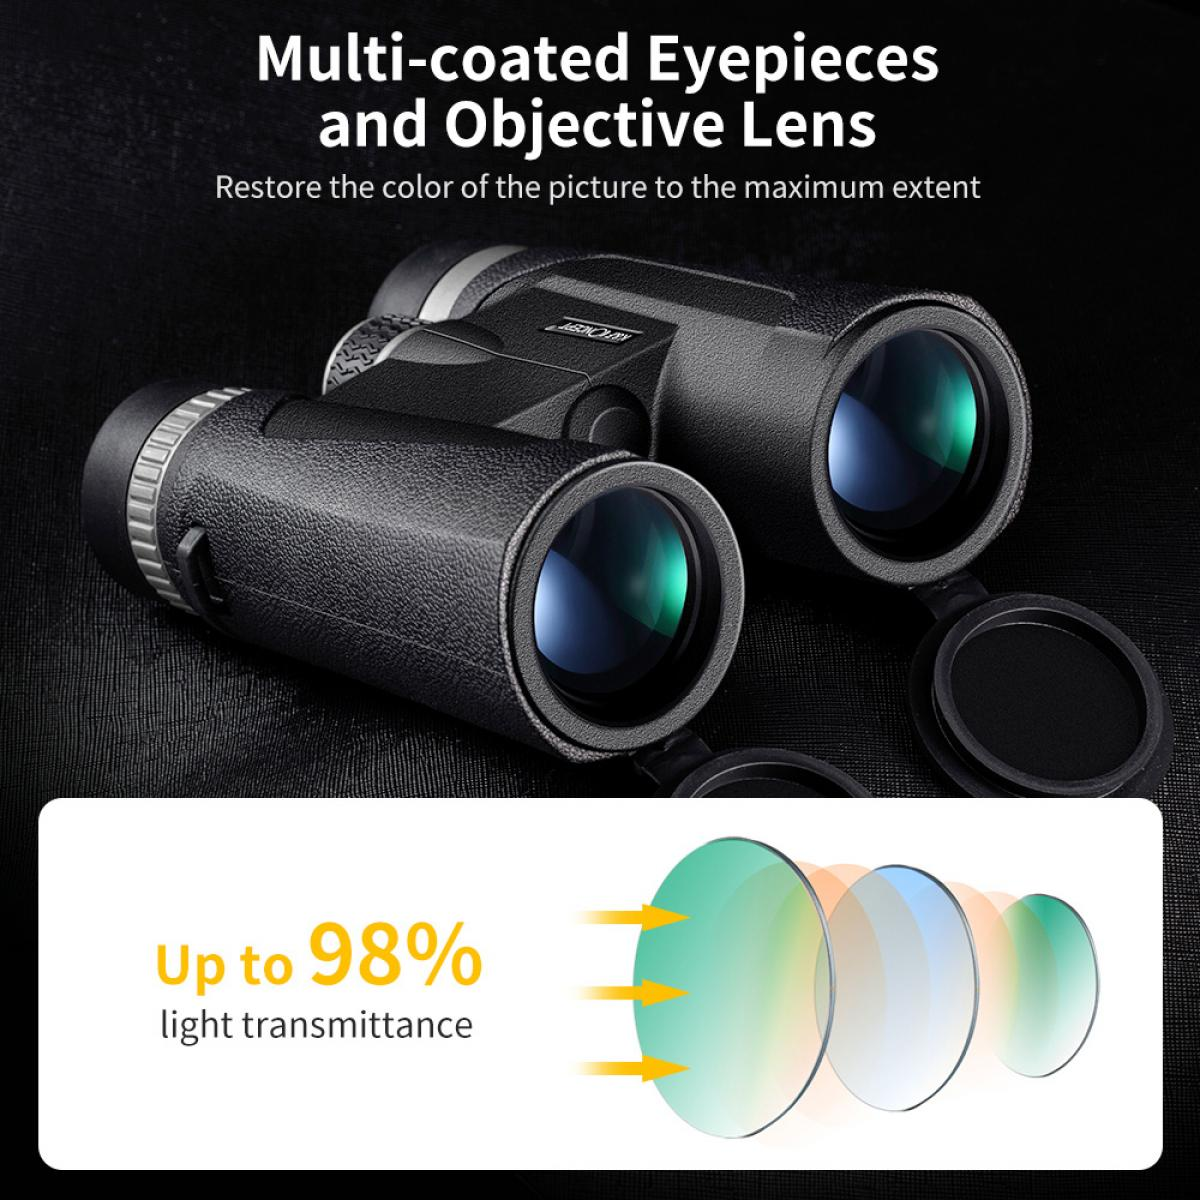 HY1242A 12x42 Binoculars with 20mm Large View Eyepiece & BAK4 Clear Light Vision for Bird Watching, Hunting, Sports